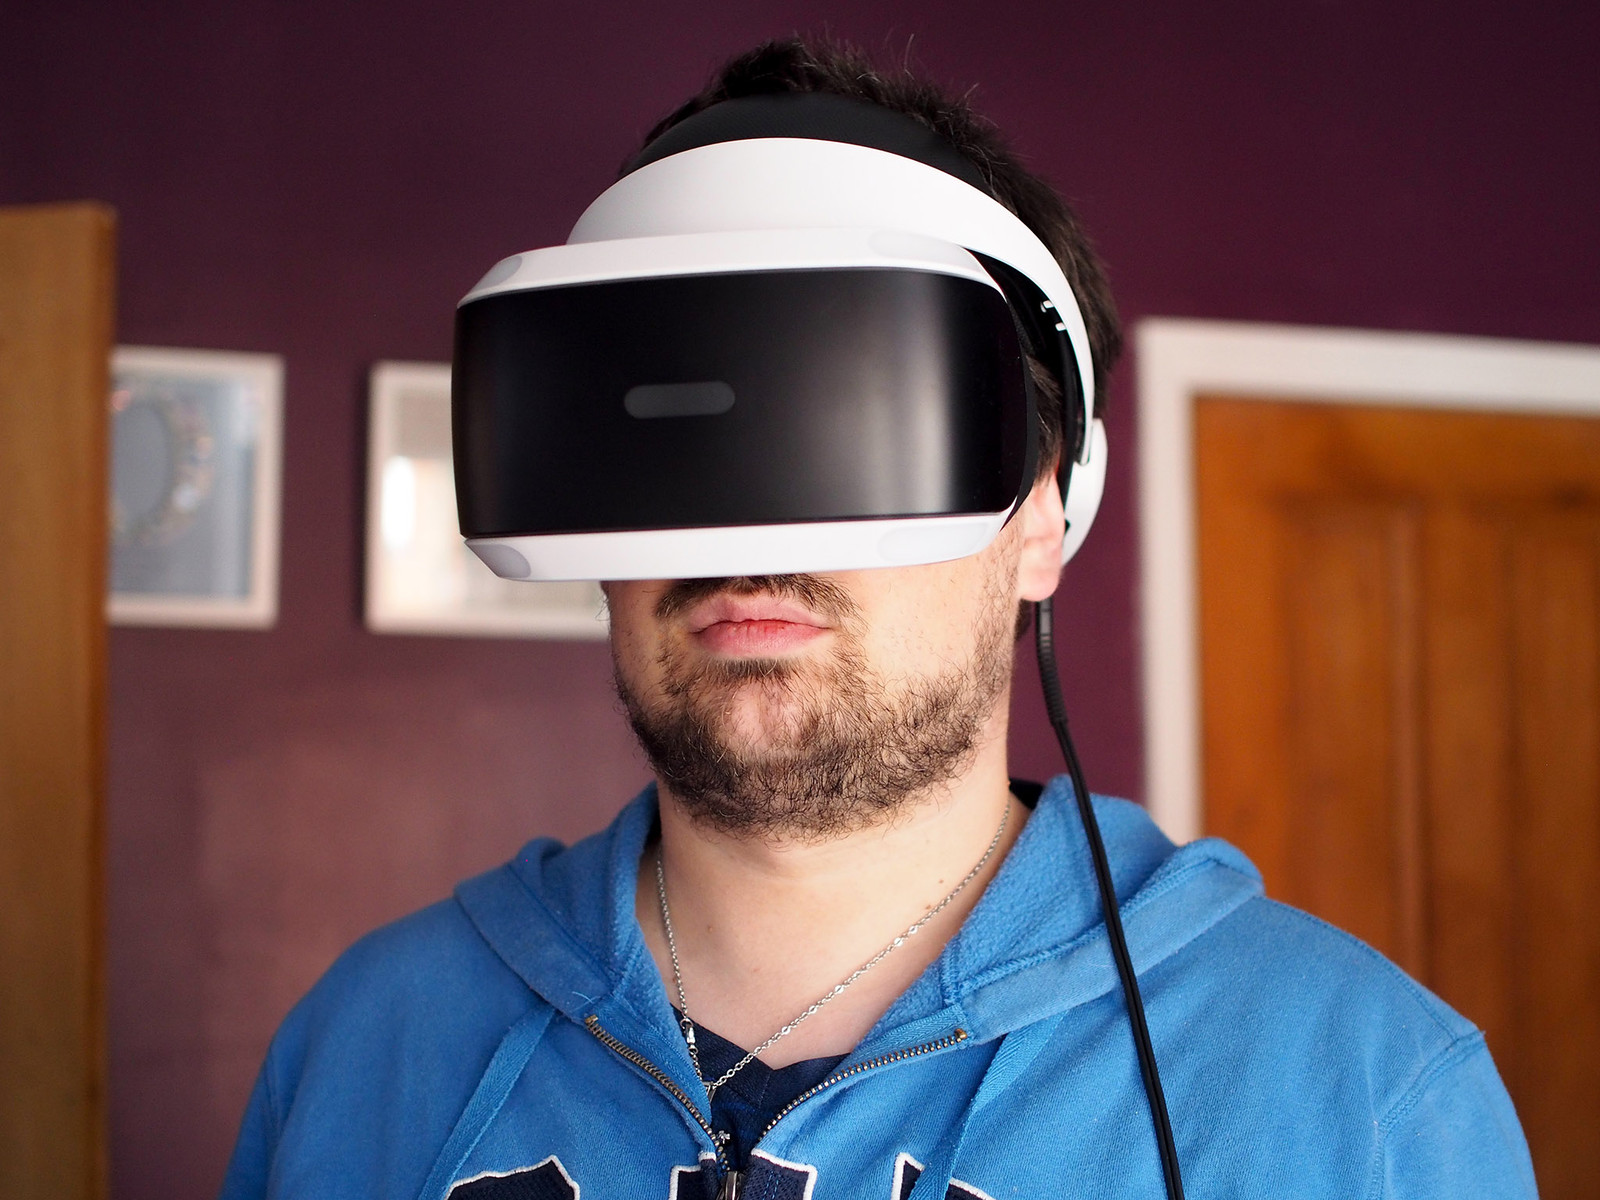 Richard using PSVR